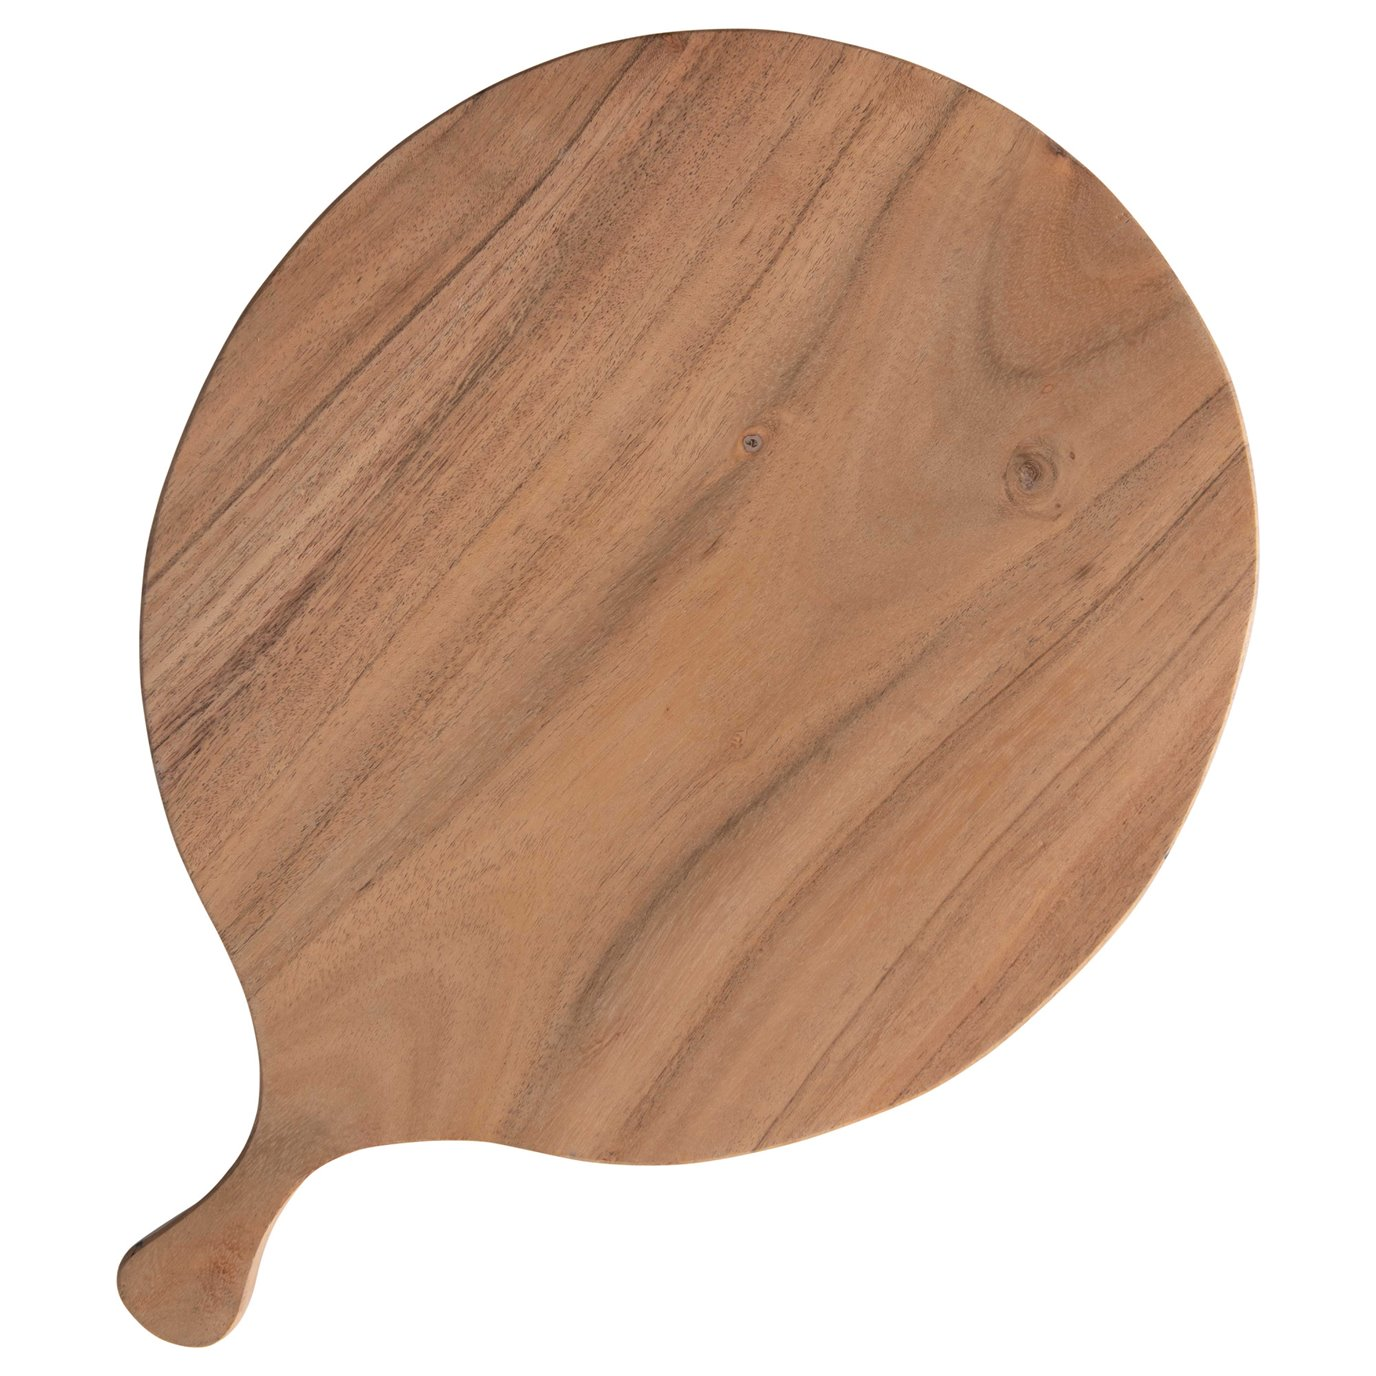 Round Acacia Wood Cheese/Cutting Board with Handle